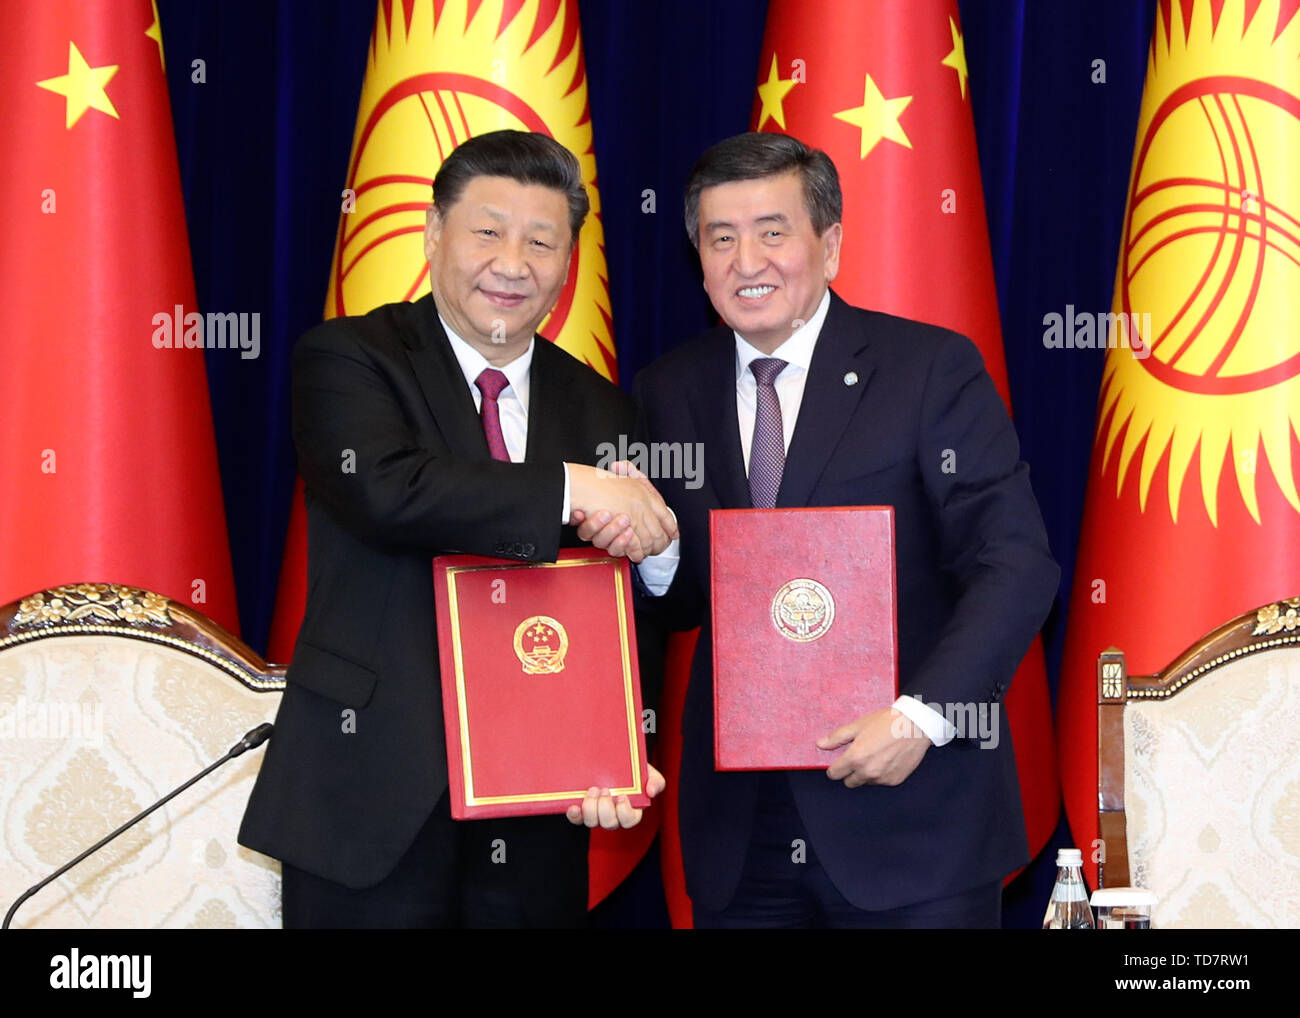 Bishkek, Kyrgyzstan. 13th June, 2019. Chinese President Xi Jinping shakes hands with his Kyrgyz counterpart Sooronbay Jeenbekov after signing the joint statement on taking their countries' comprehensive strategic partnership to new heights in Bishkek, Kyrgyzstan, June 13, 2019. Xi and Jeenbekov held talks here Thursday, agreeing to take their countries' comprehensive strategic partnership to new heights. Credit: Ding Lin/Xinhua/Alamy Live News - Stock Image